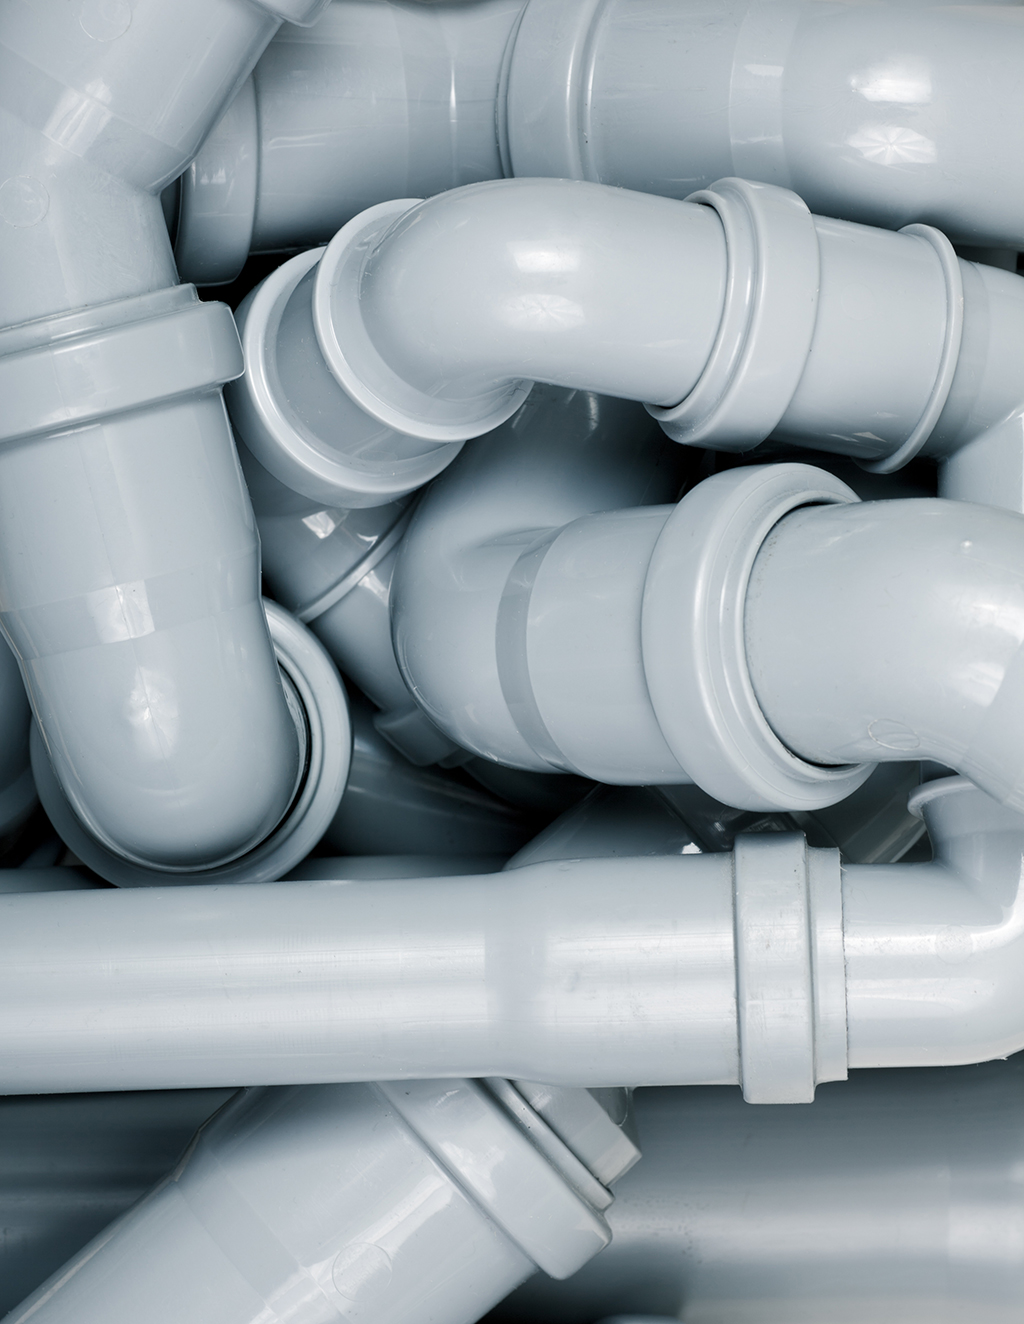 Drain-Cleaning-Service--When-Your-Pipes-Are-Making-Keeping-Them-Clean-More-Difficult-_-Chattanooga,-TN